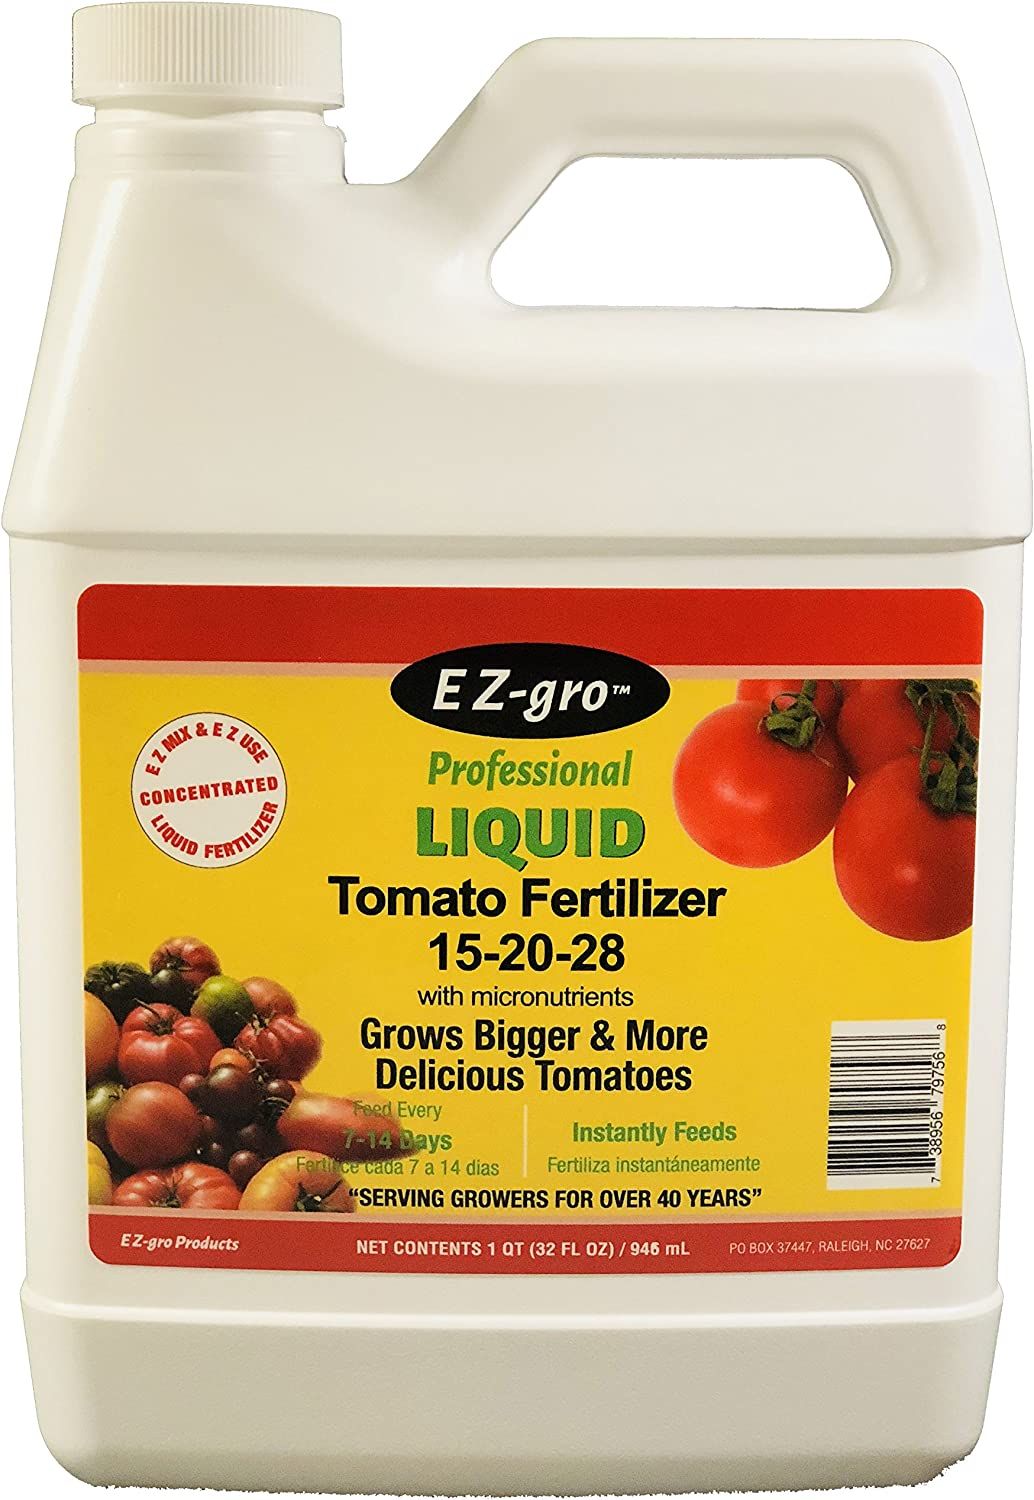 Tomato Fertilizer by EZ-GRO is a High Potassium Fertilizer for Your Tomato Plants | Field Tested Tomato Plant Food for Vegetables | A Concentrated Liquid Tomato Plant Fertilizer | 1 Quart